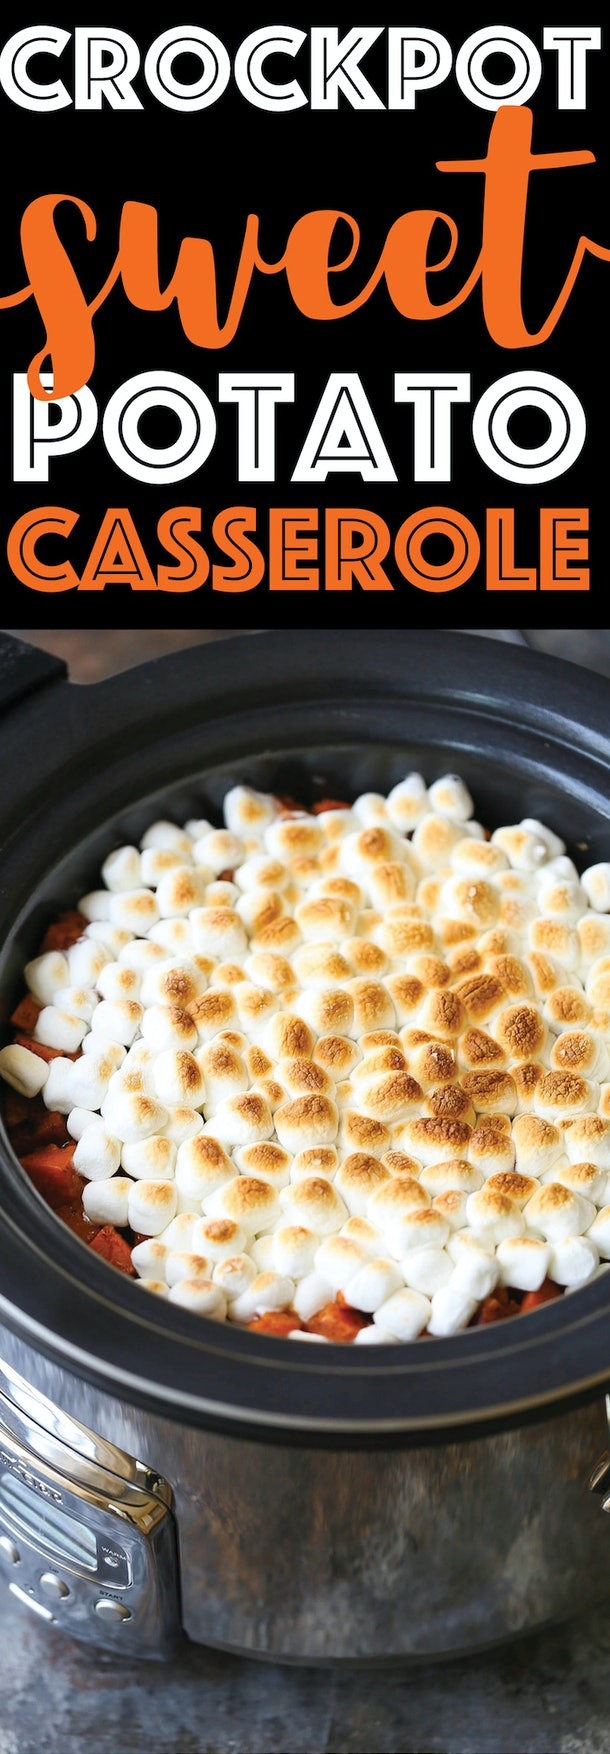 crockpot fullf of sweet potato chunks covered in slightly toasted mini marshmallows